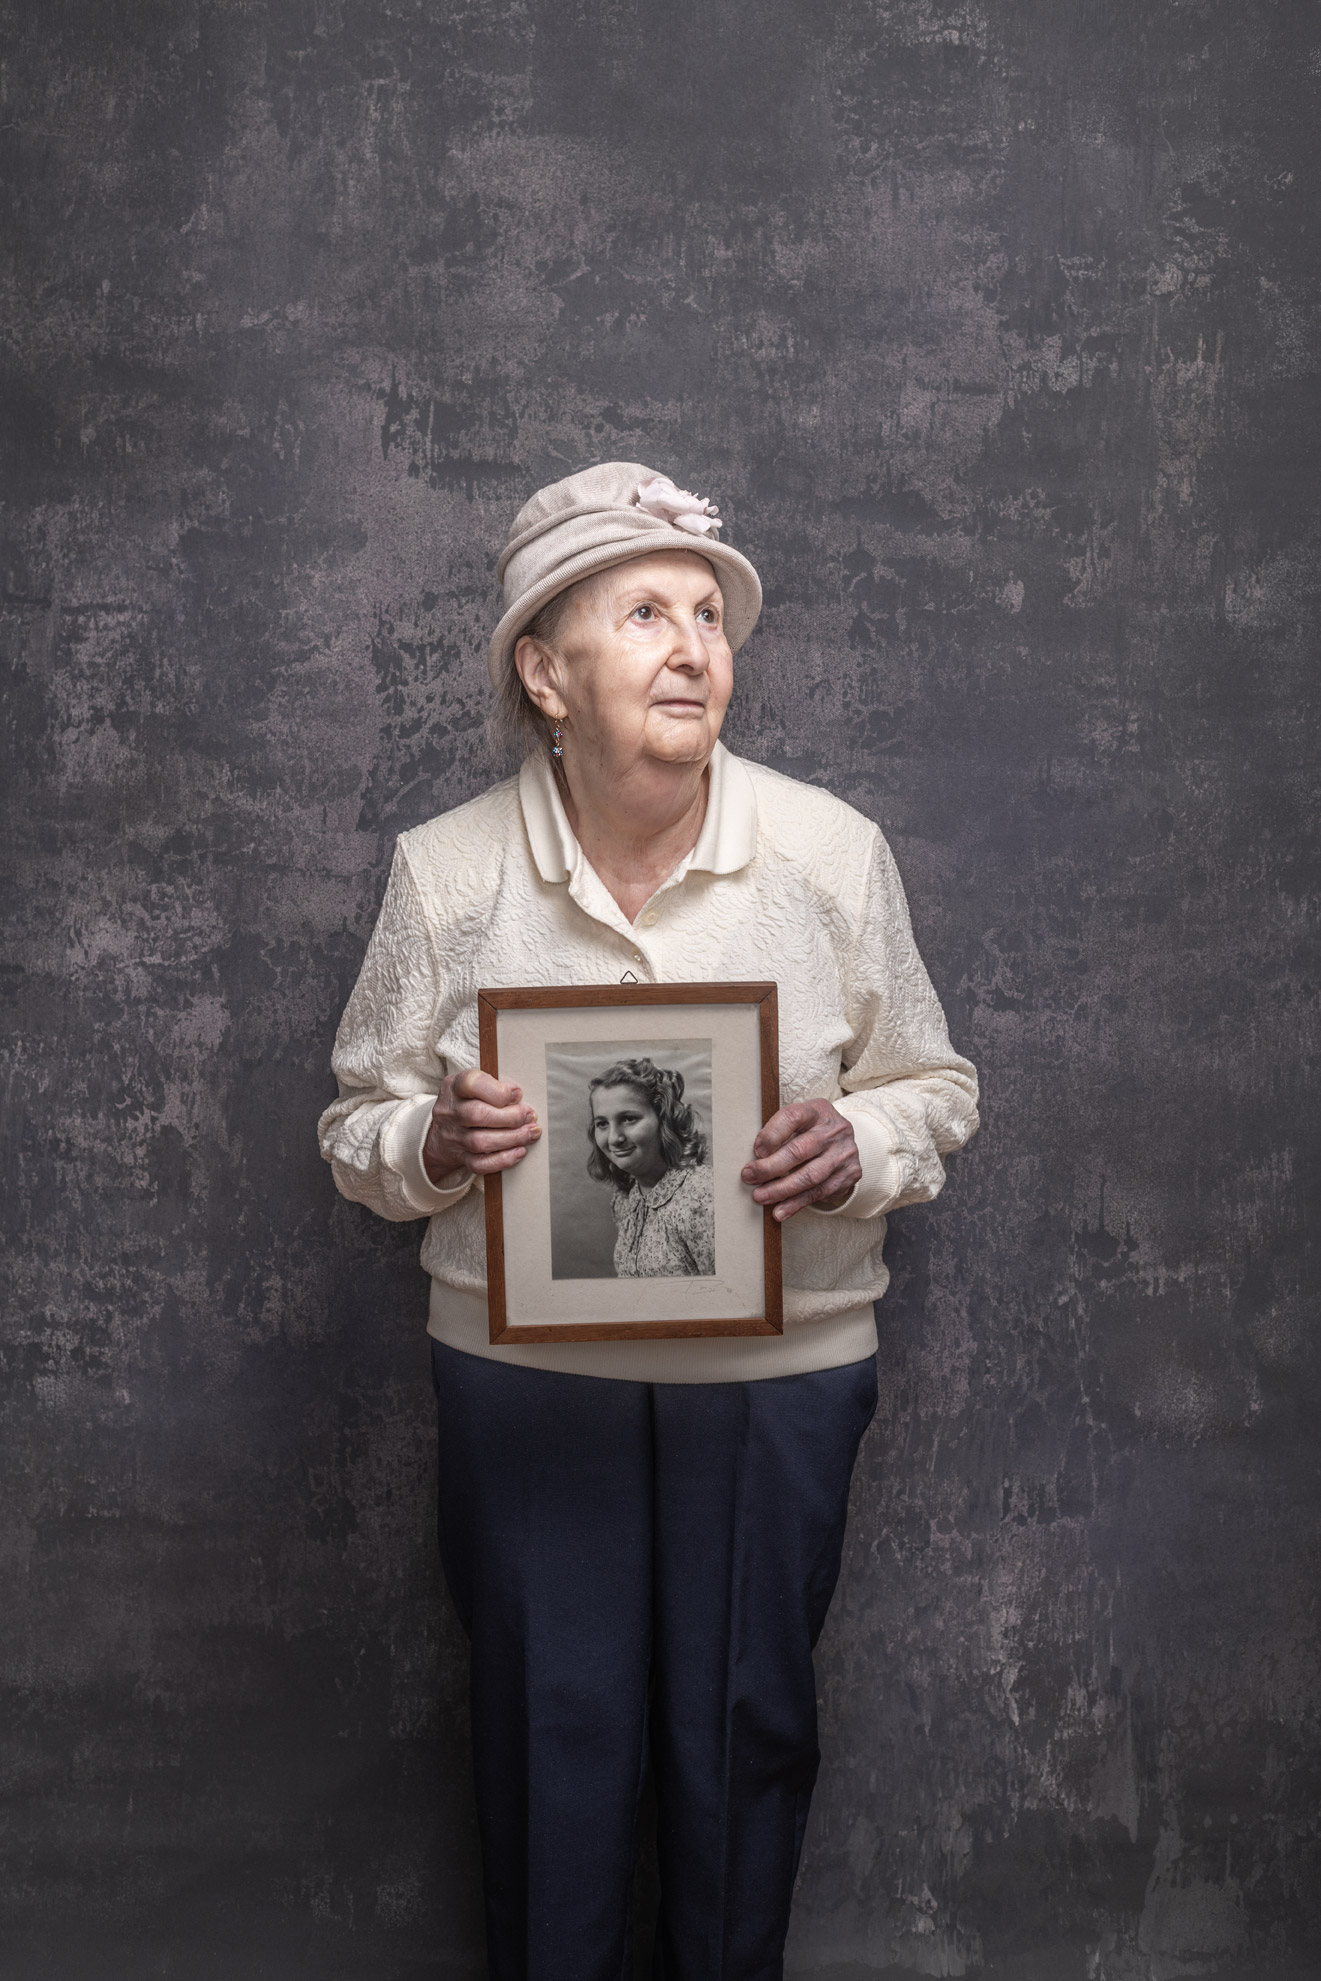 Holocaust survivor Goldie Kalib holding a portrait of herself as a young girl